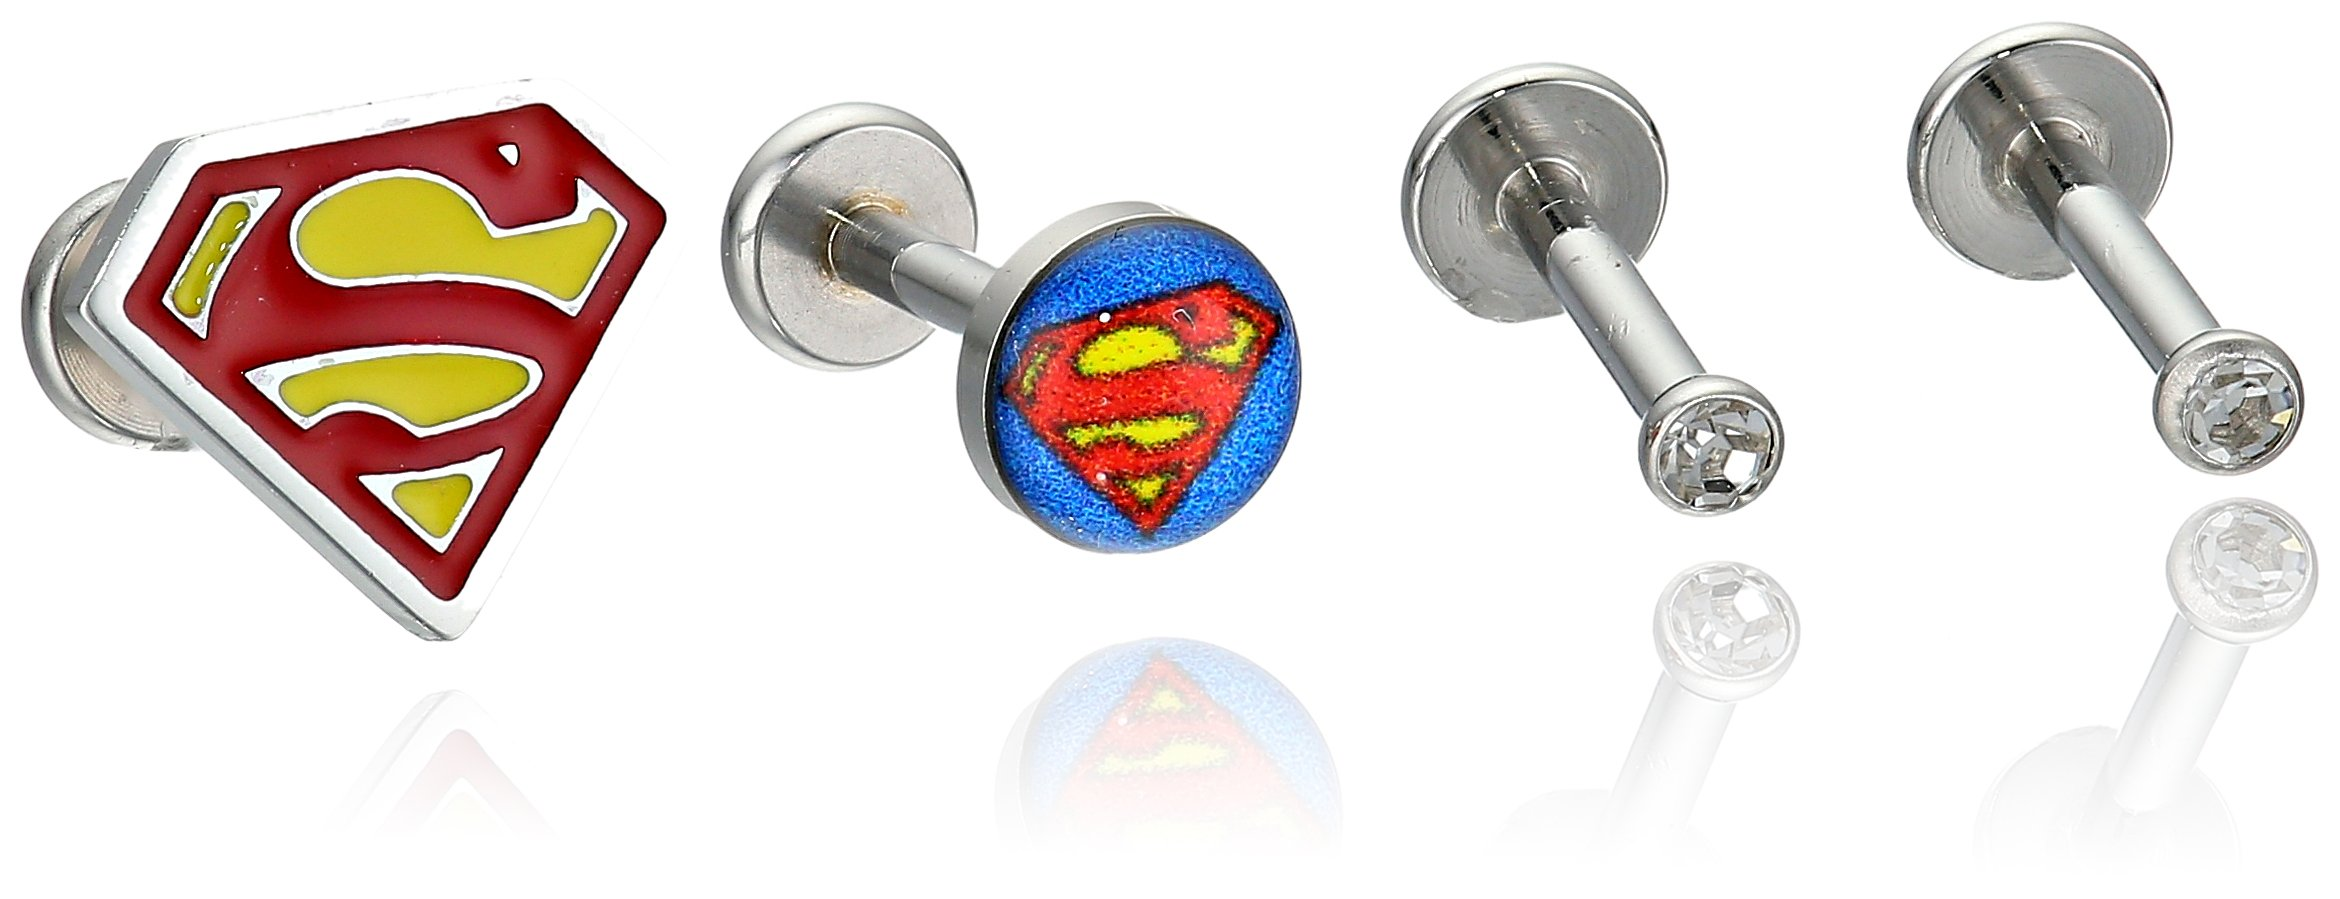 DC Comics Unisex Superman Stainless Steel Gem Top Labret Stud-16 Gauge (5 Piece Set)